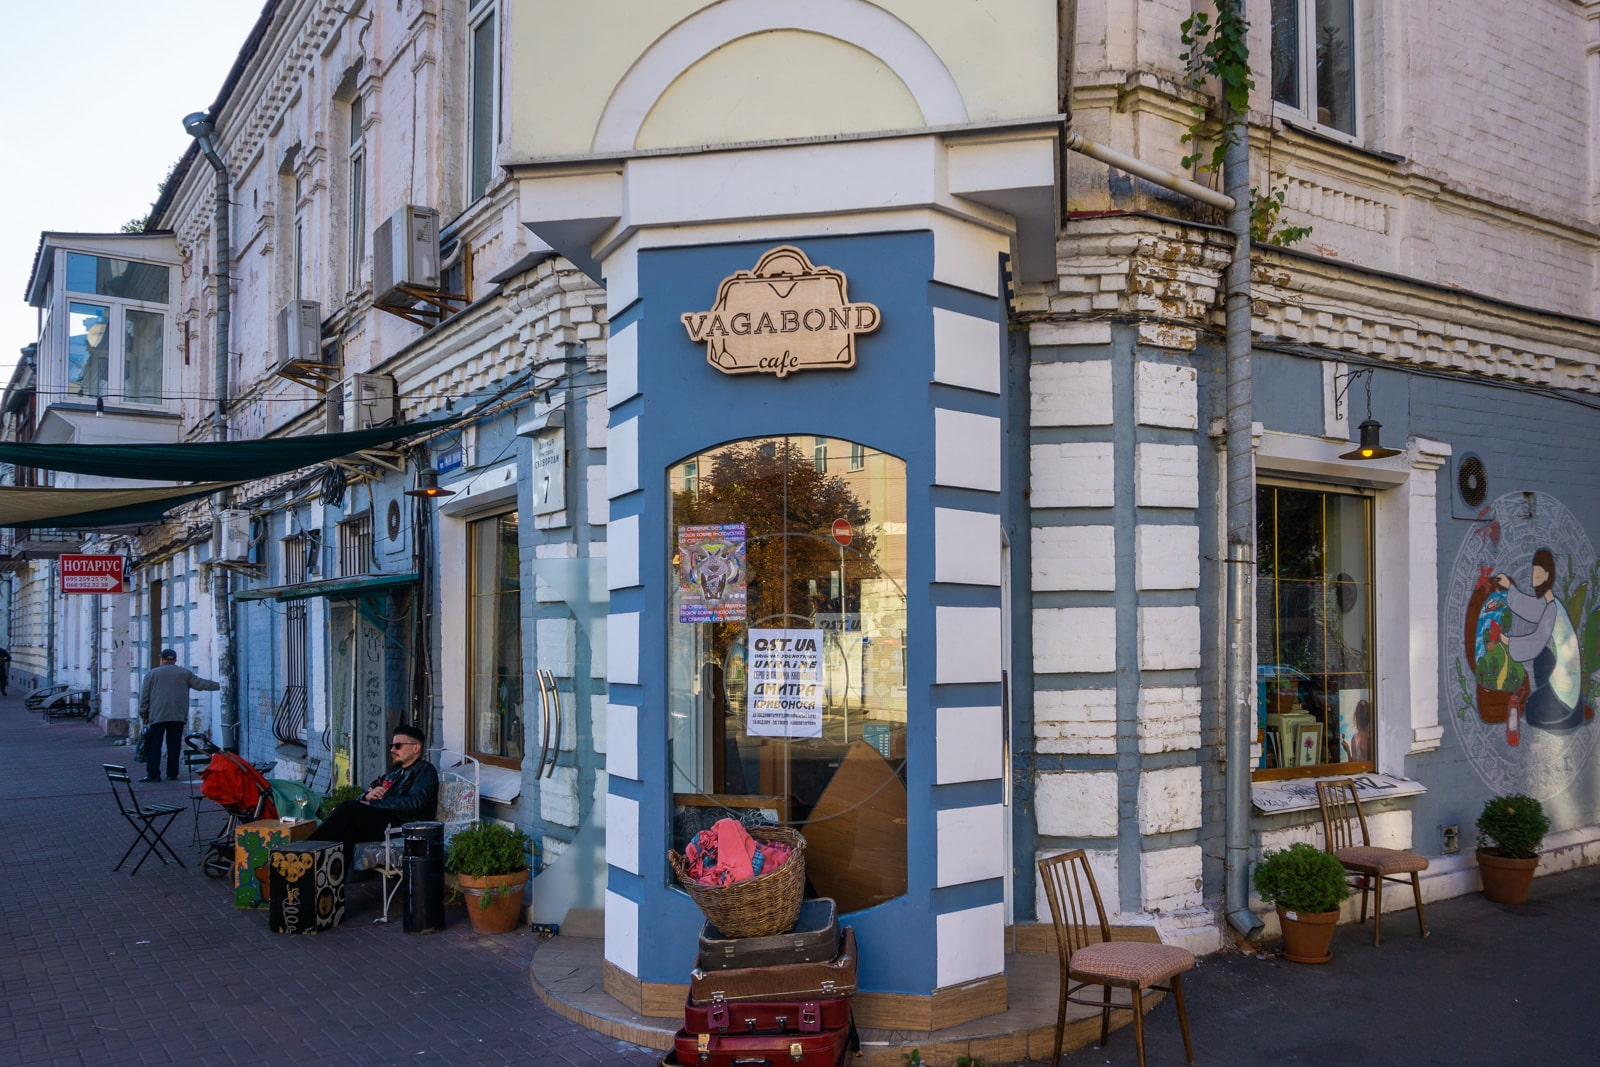 Vagabond Cafe exterior in Kyiv, Ukraine